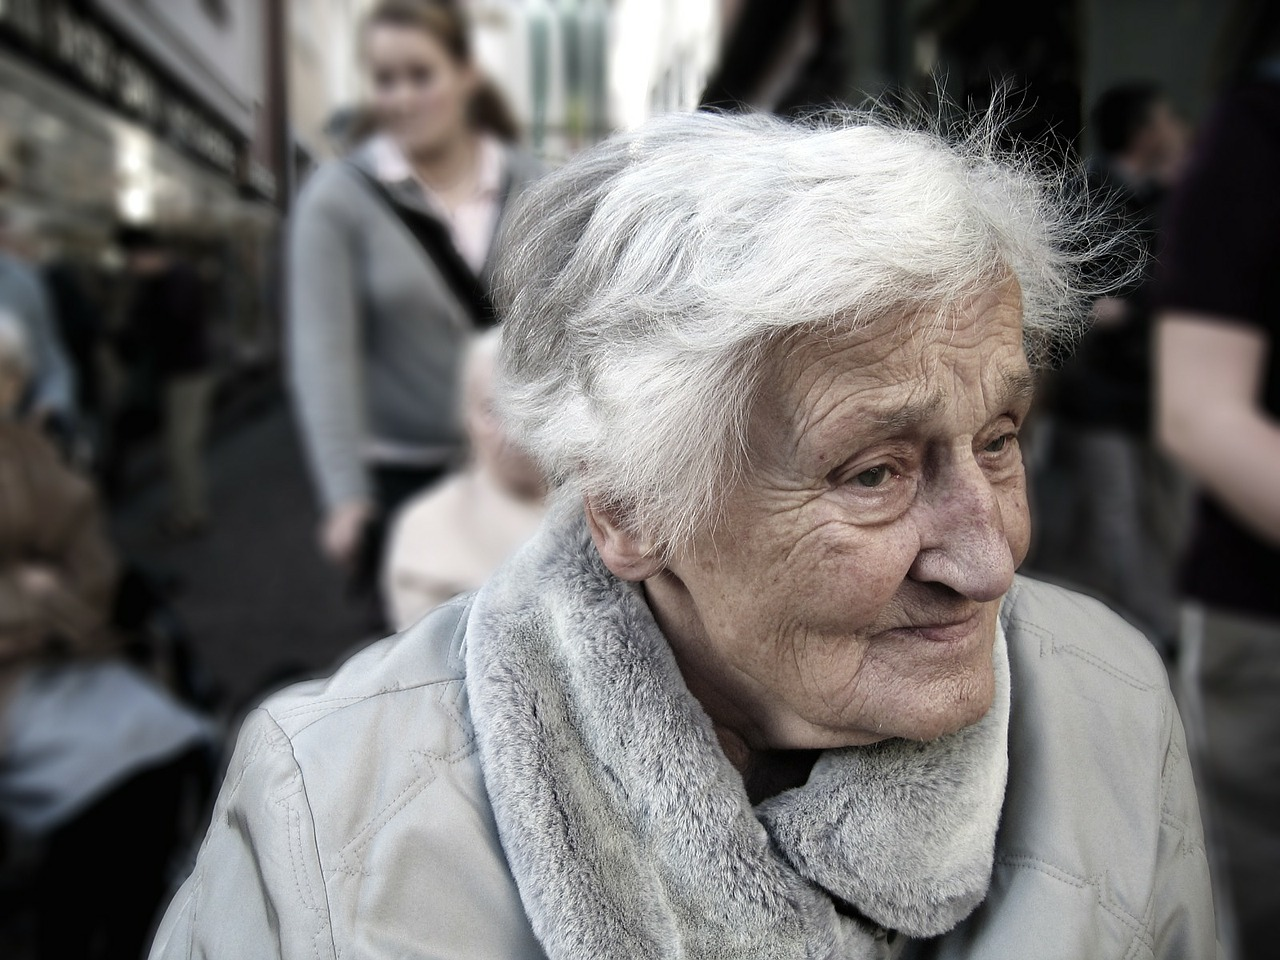 Social care needs a strong whistleblowing culture